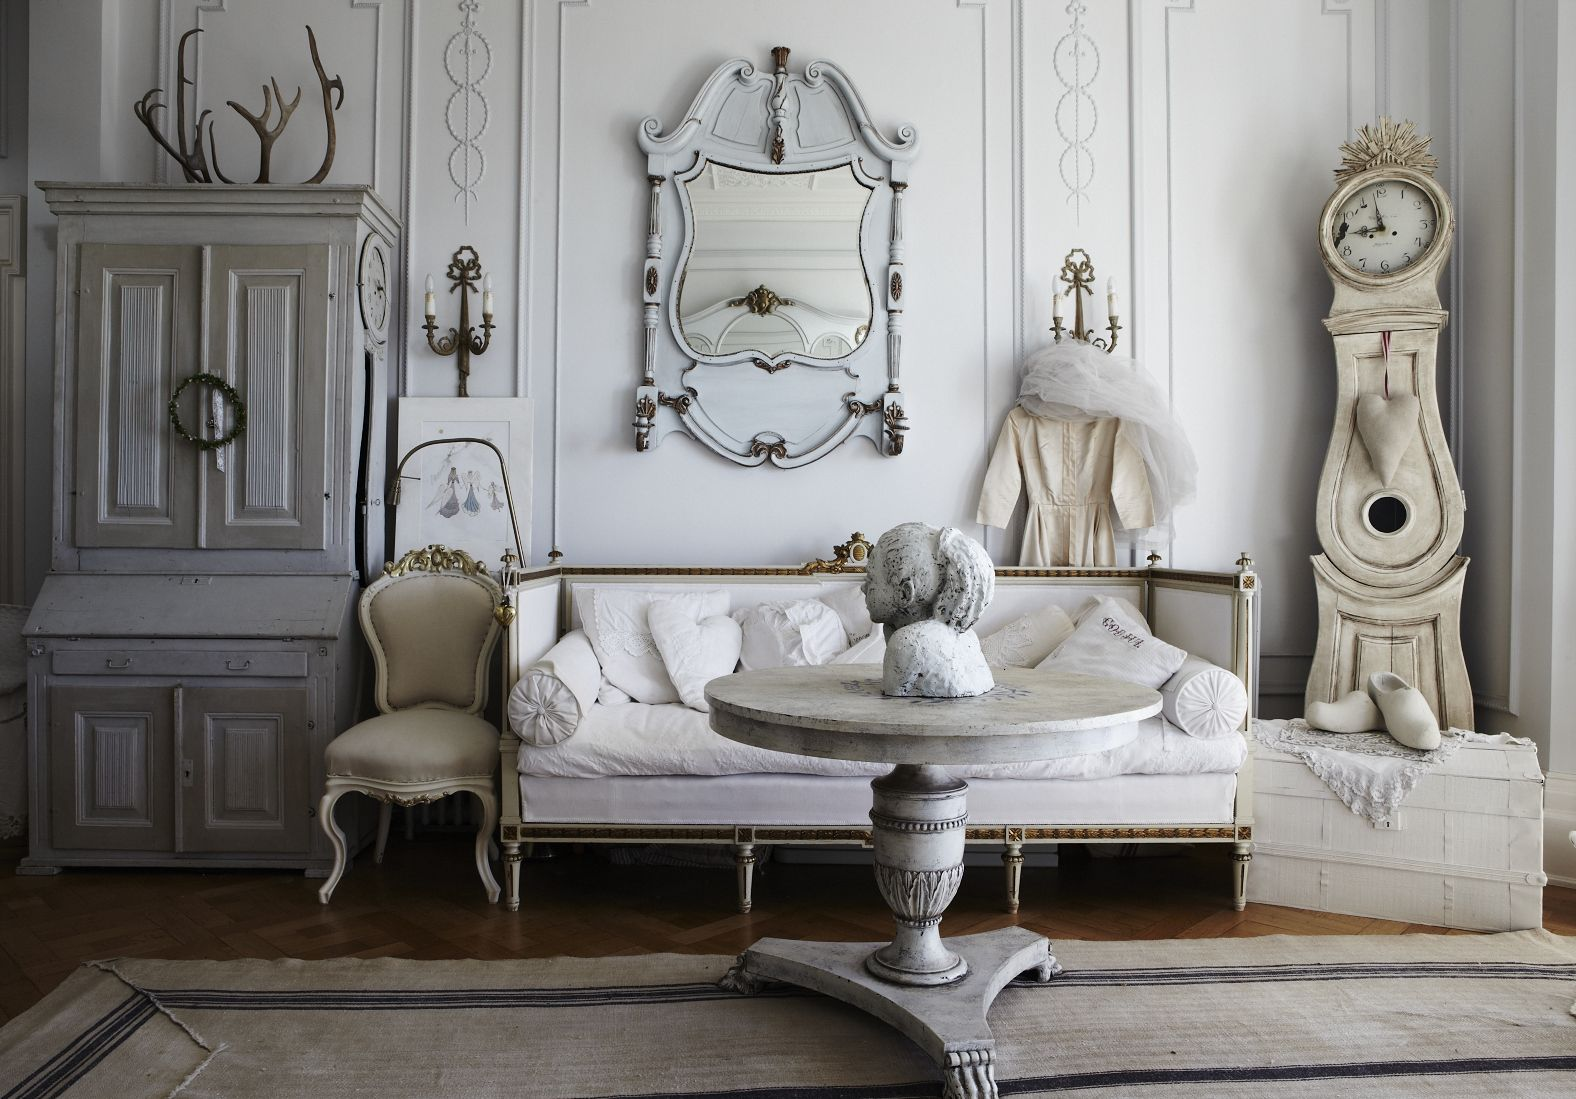 L'appartamento al piano di sotto...: shabby chic, country chic ...